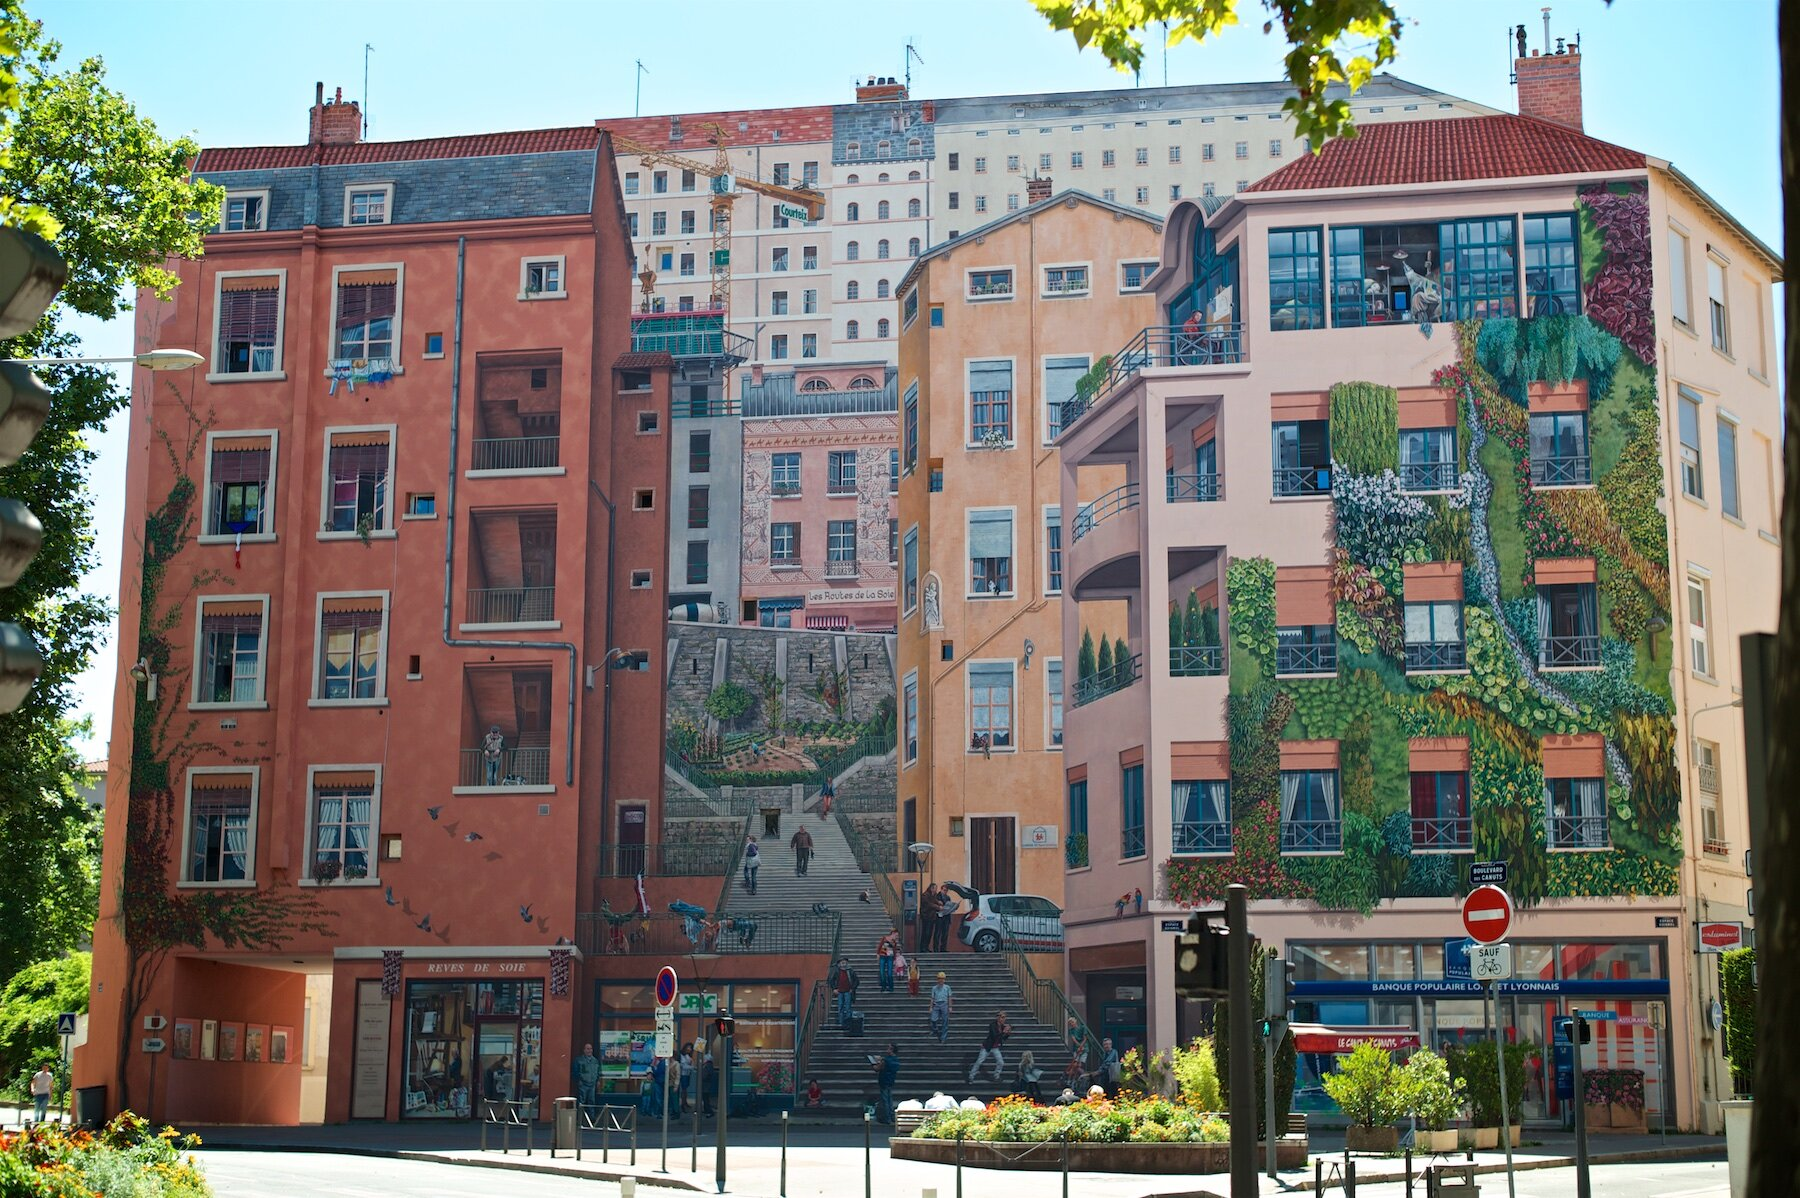 Mur des Canuts in Lyon.